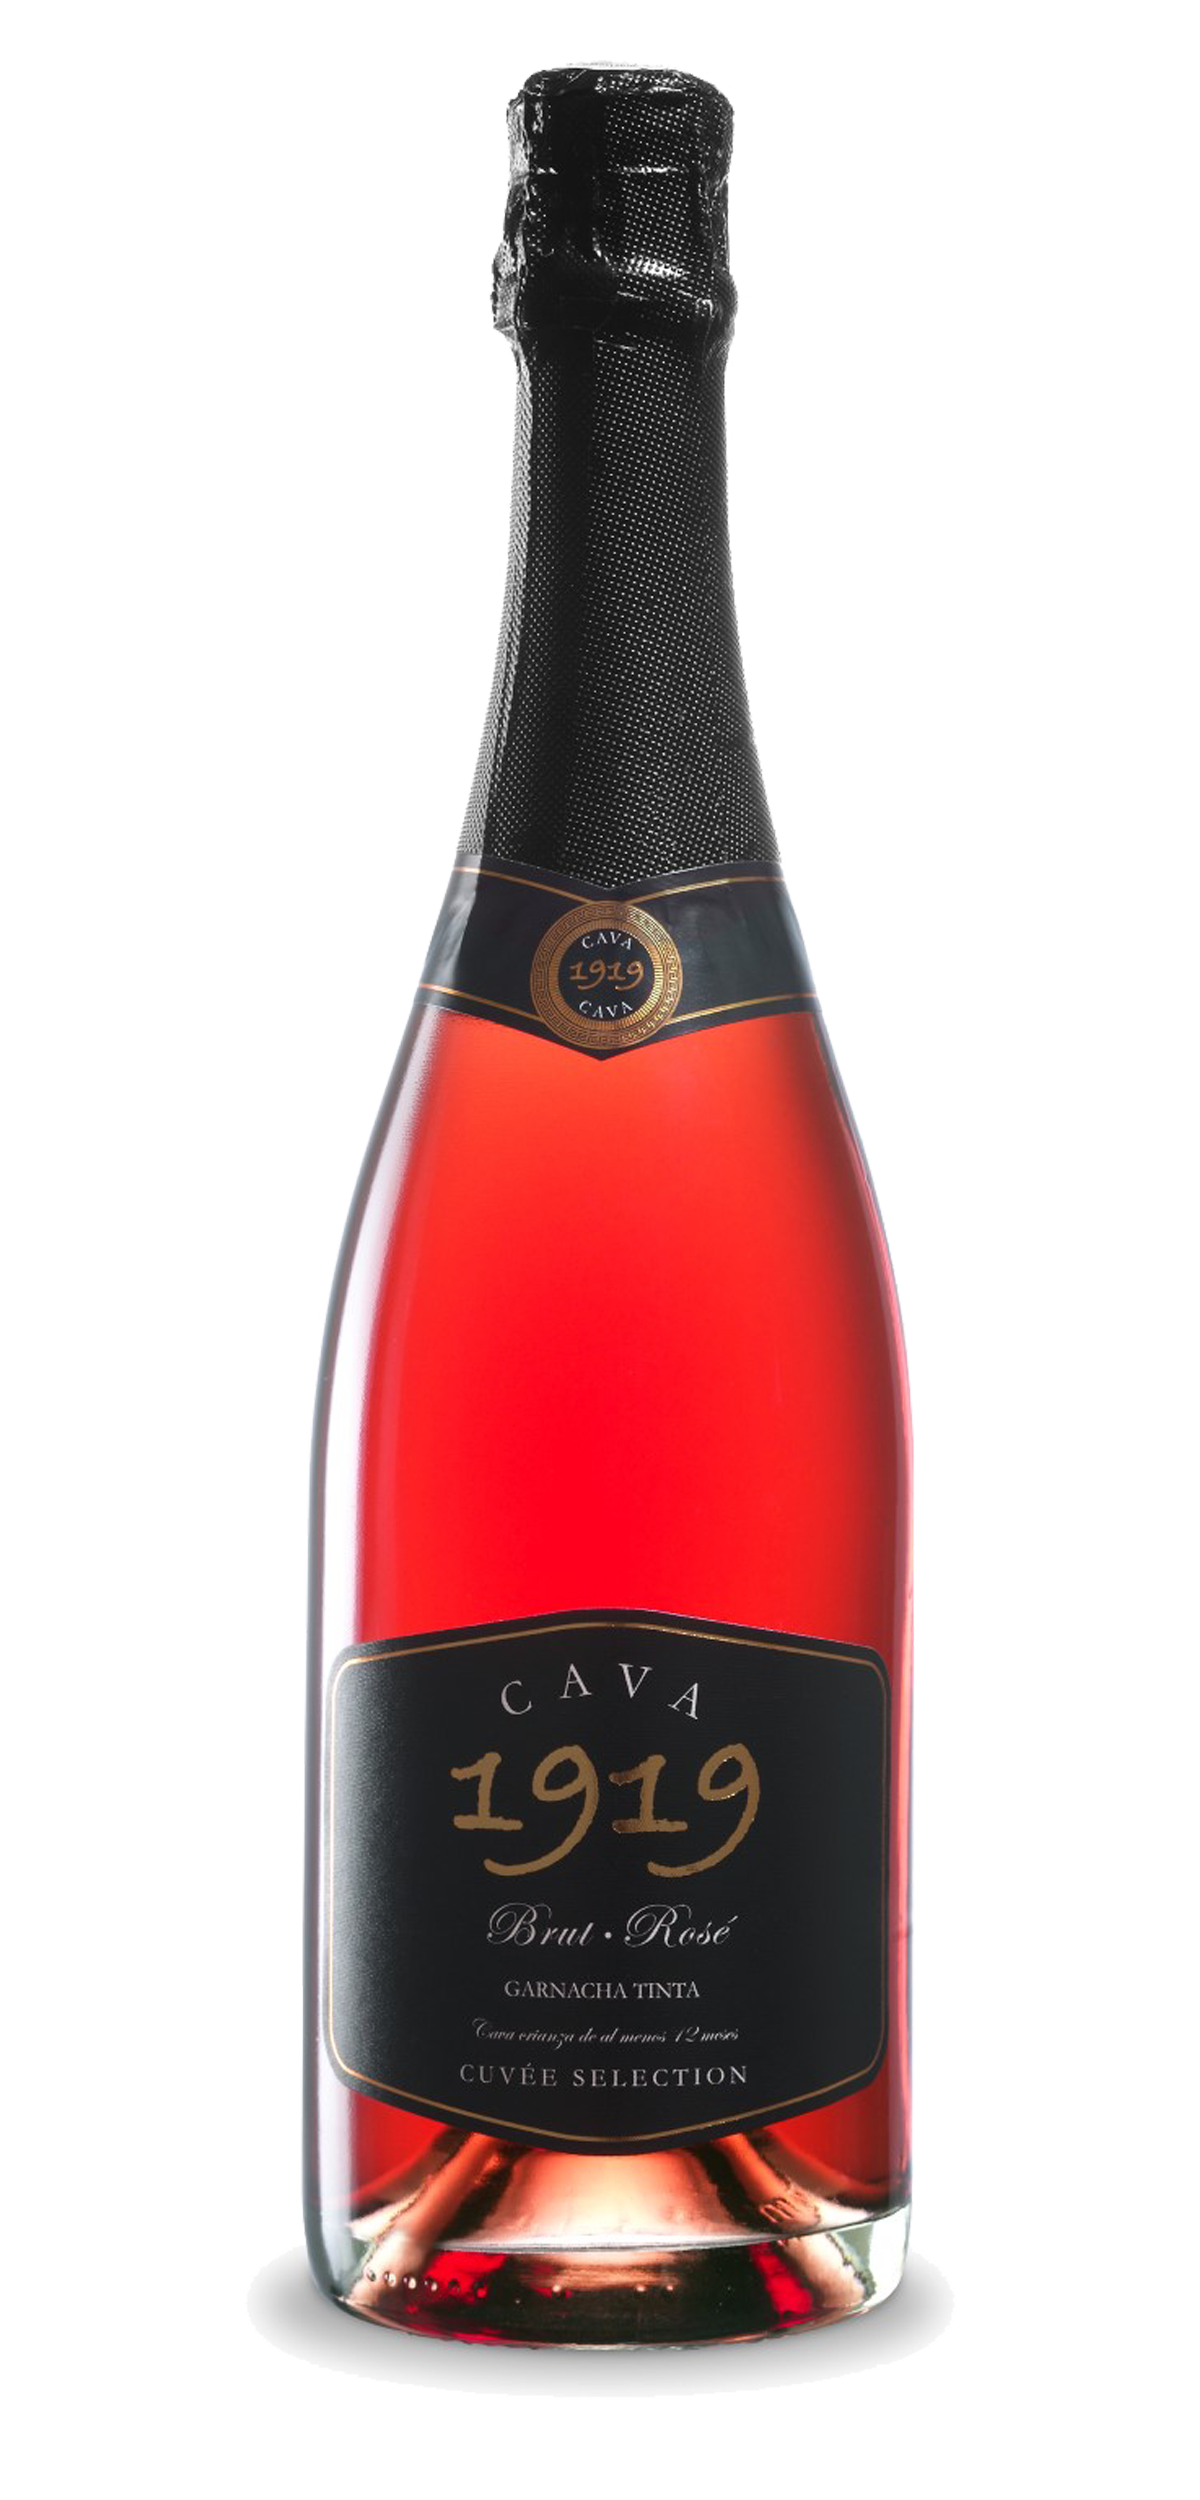 Cava 1919 Brut Rosé wine bottle design